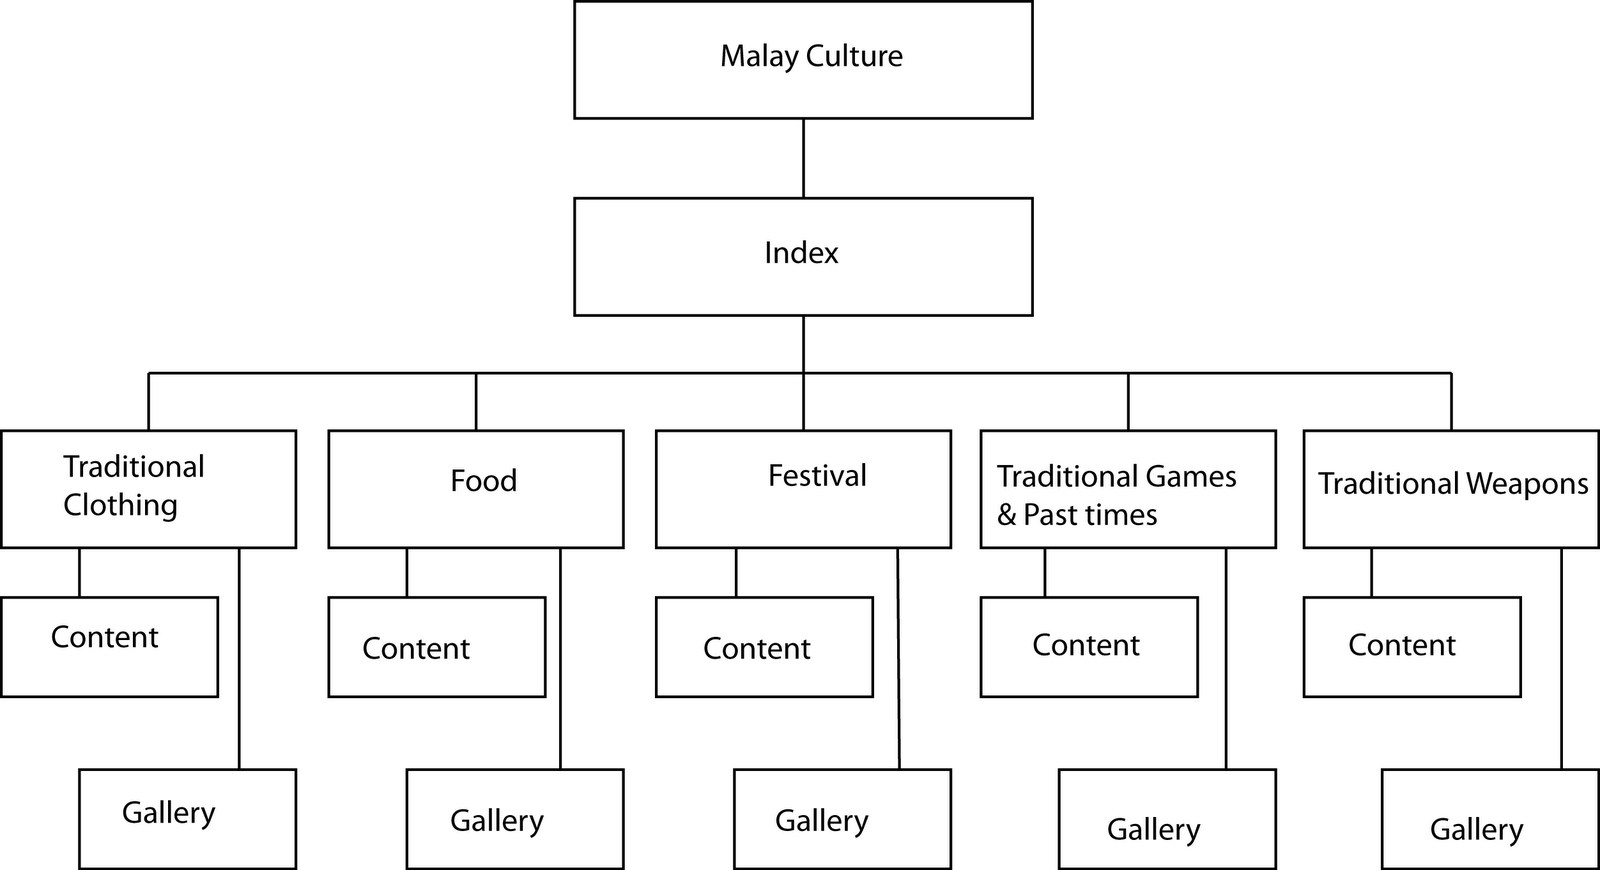 Tourism-Culture and Heritage:Malay Culture